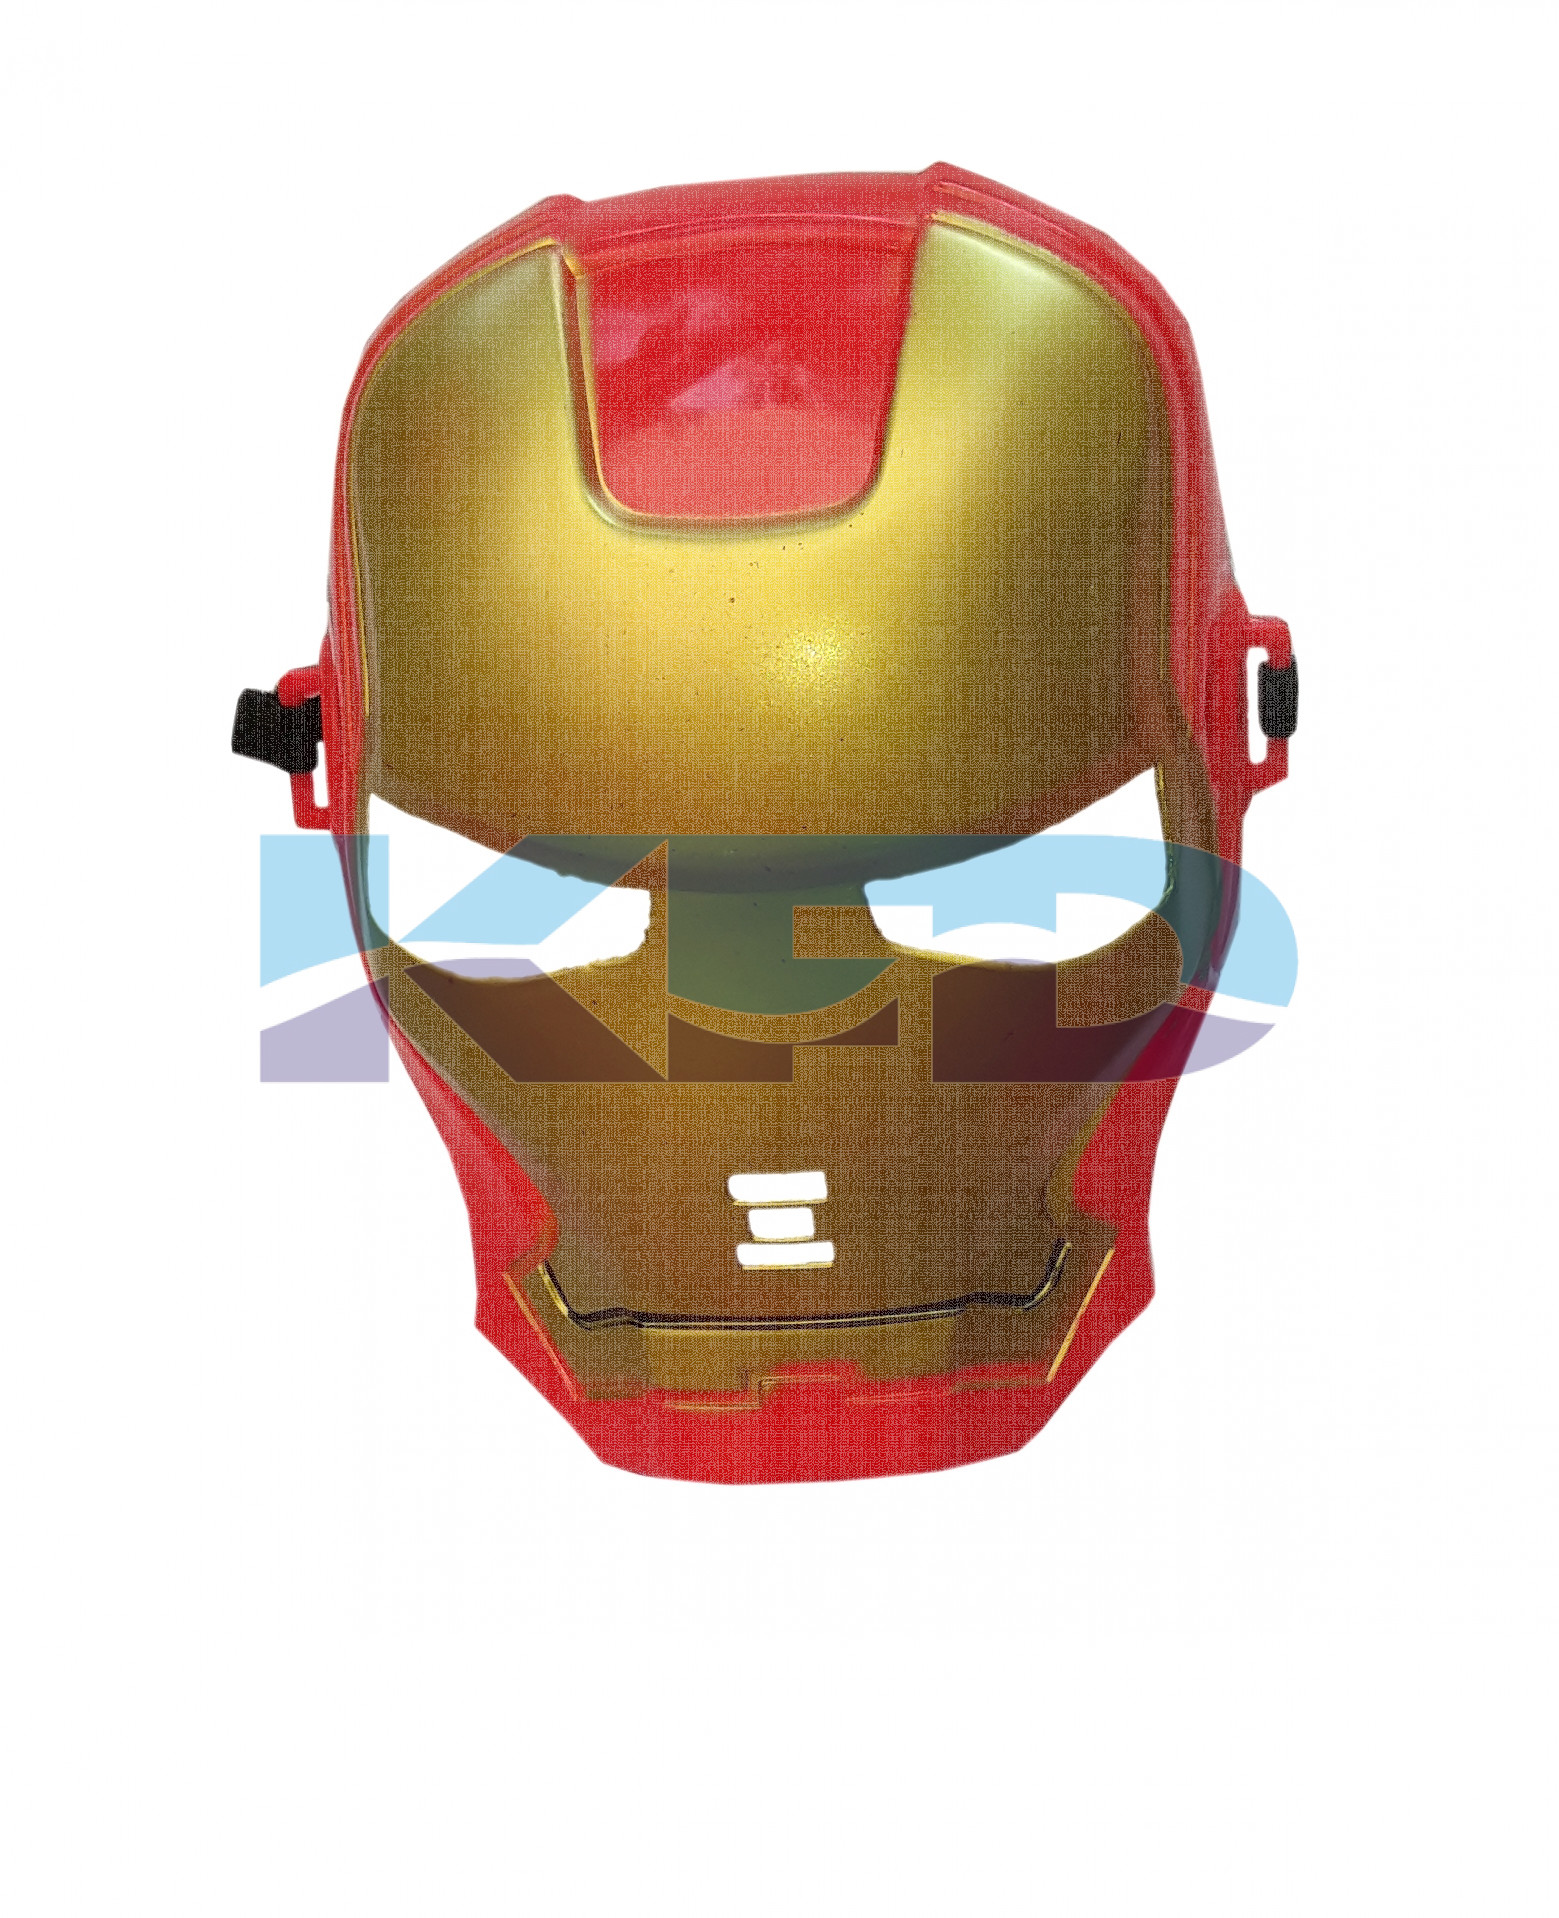 Iron man Face CosPlay Costume/Super Hero Face/School Annual function/Theme Party/Competition/Stage Shows/Birthday Party Dress